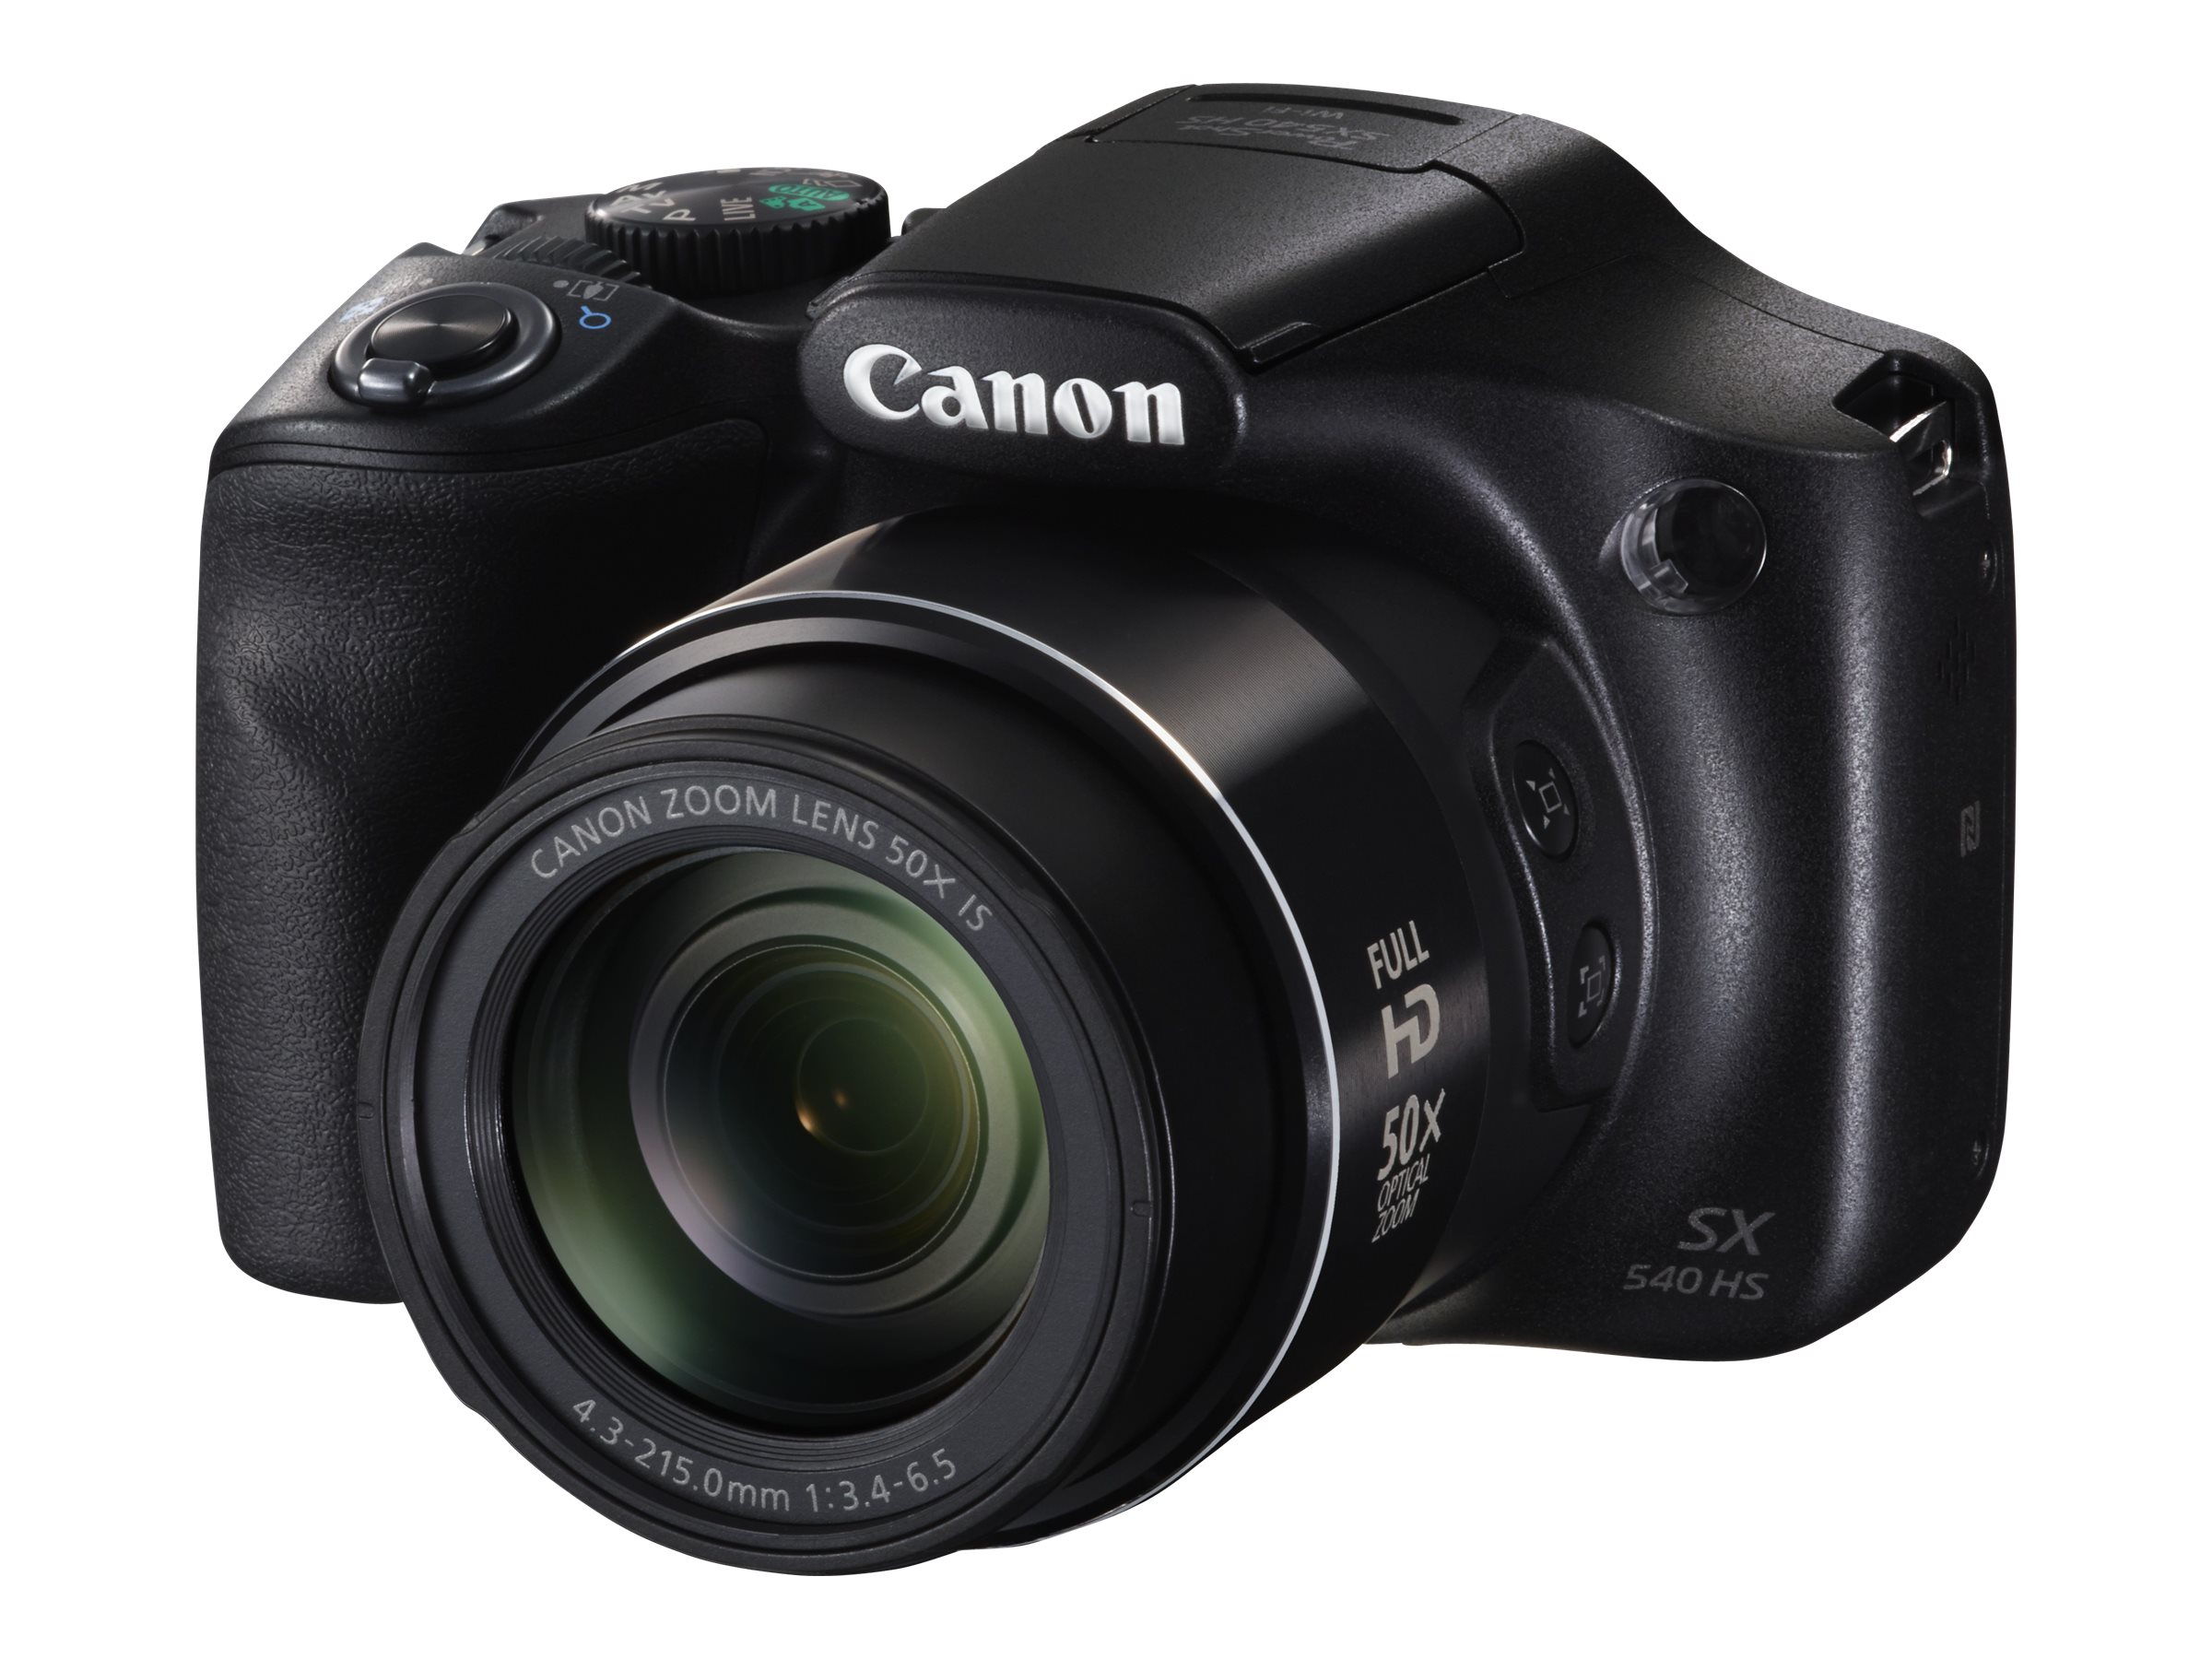 Canon PowerShot SX540 HS Digital Camera, Black, 1067C001, 31824176, Cameras - Digital - Point & Shoot